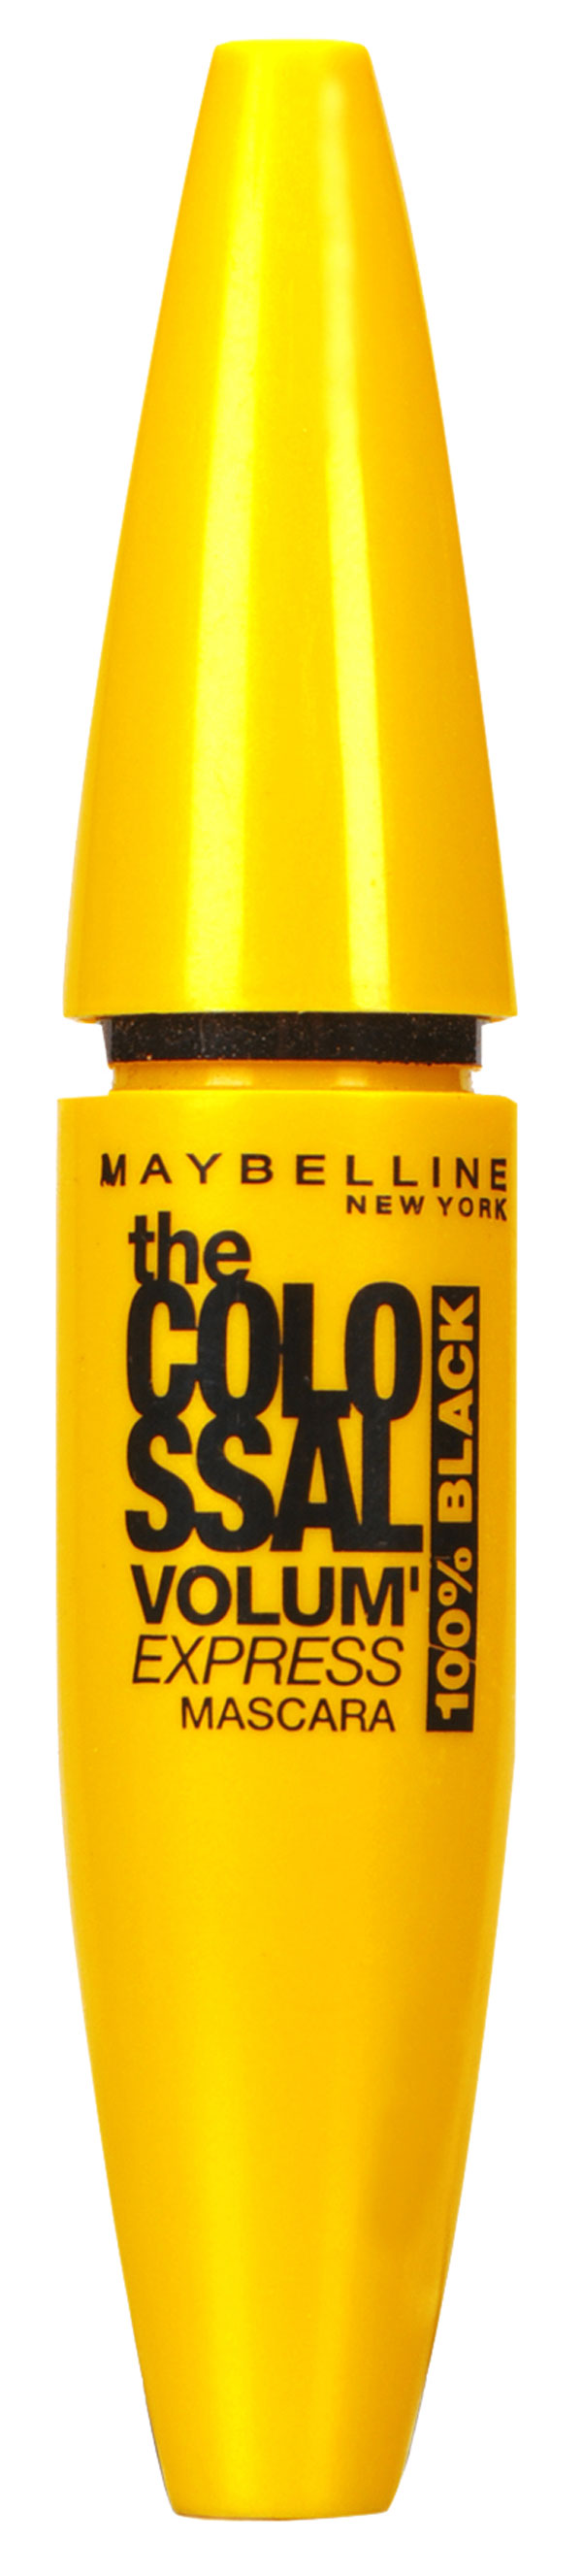 colossal-mascara